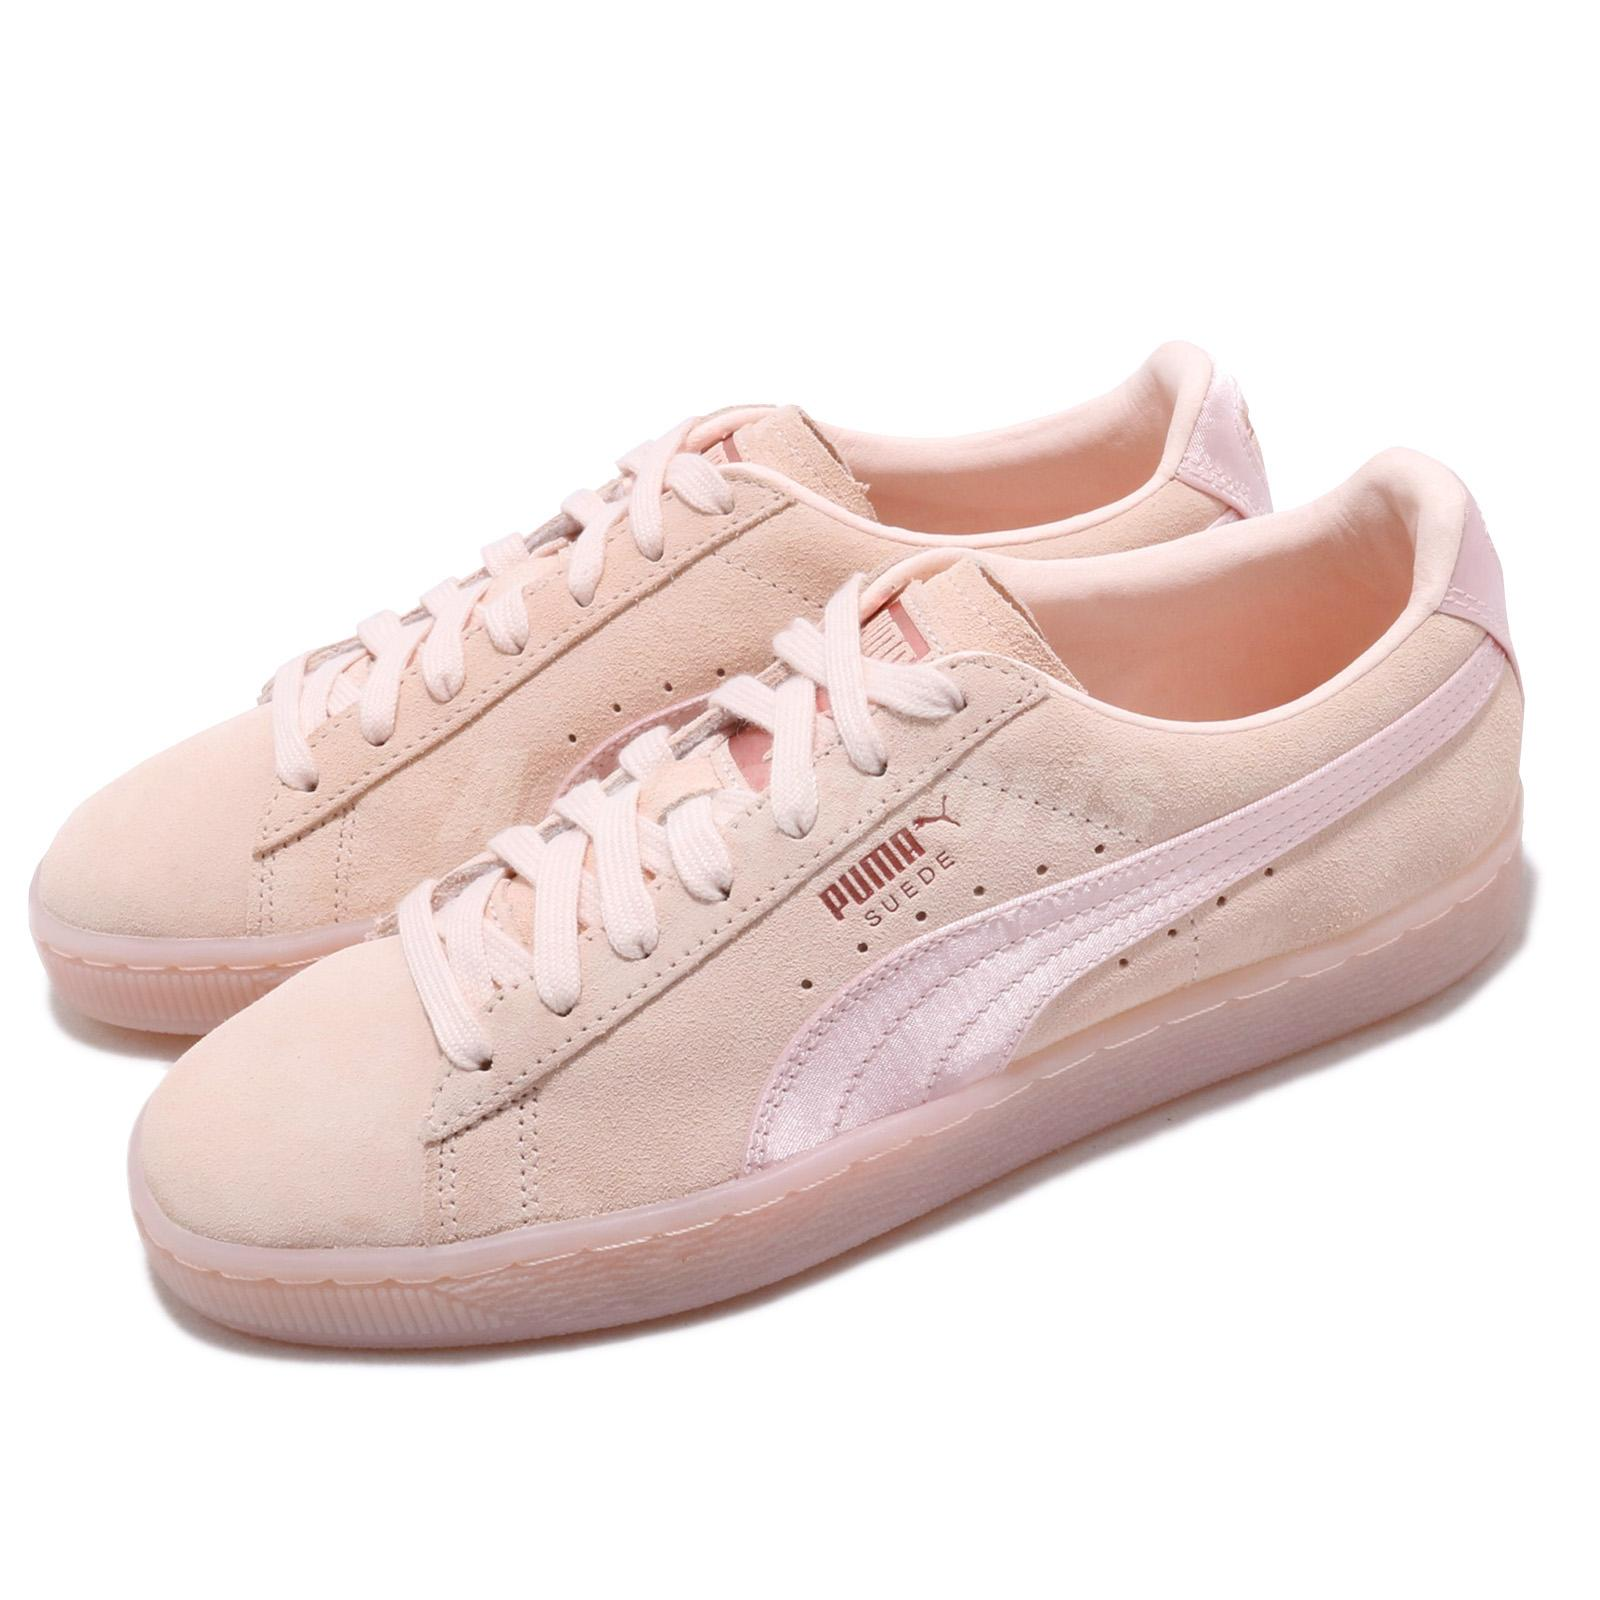 Details about Puma Suede Classic Satin Wns Pearl Rose Gold Women Casual  Shoe Sneaker 367829-03